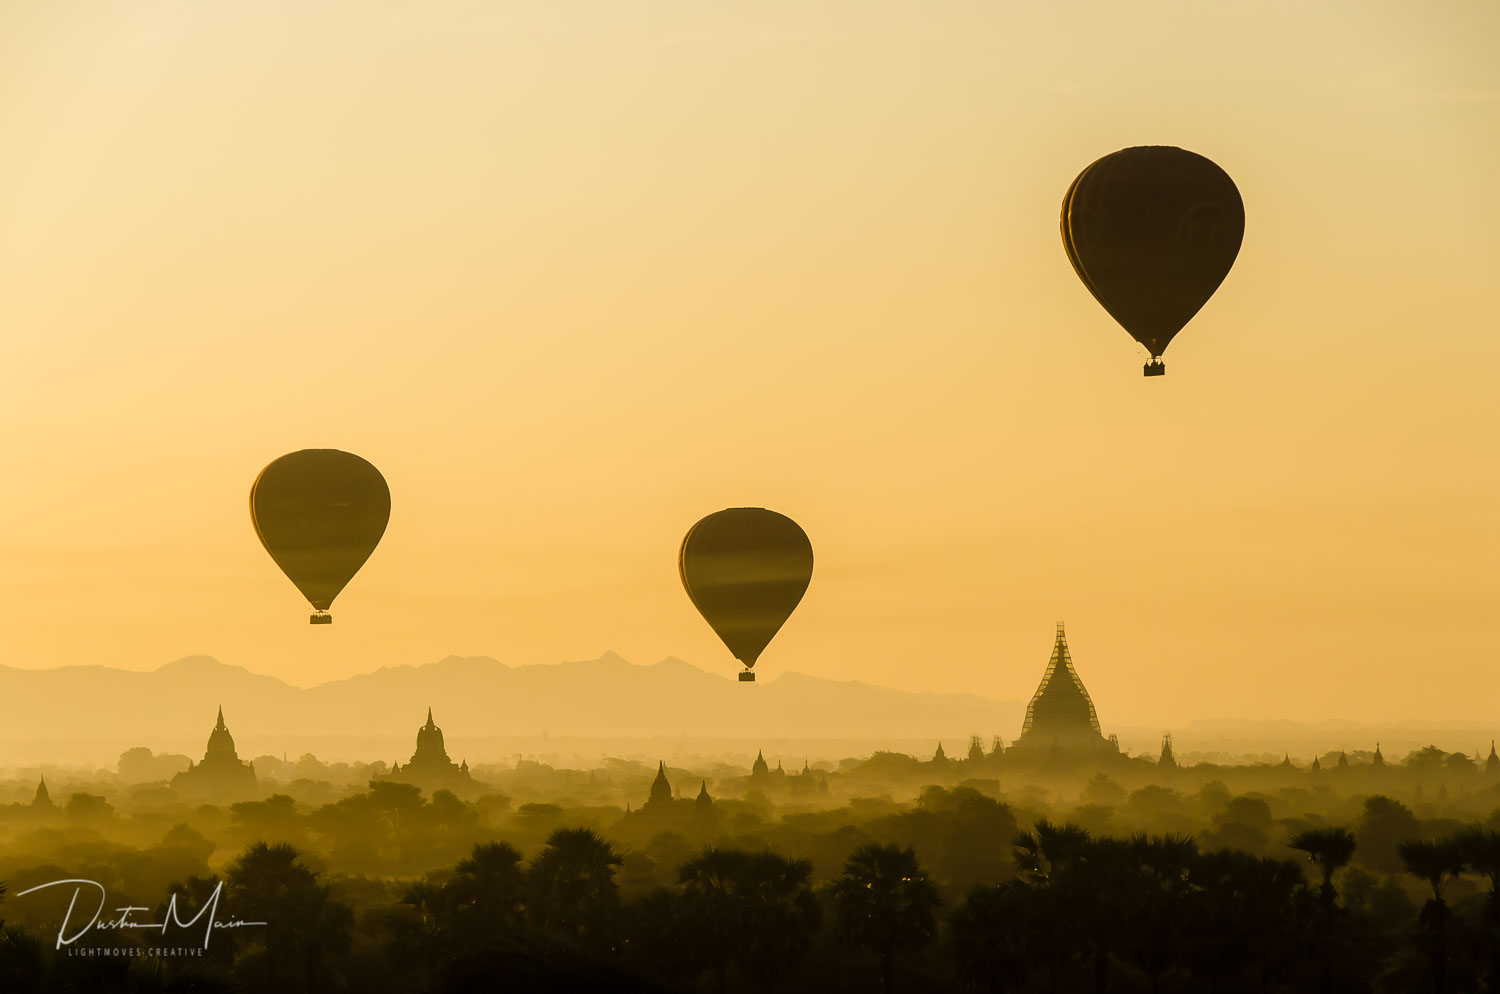 The golden light of the sunrise and the iconic balloons over Bagan © Dustin Main 2017